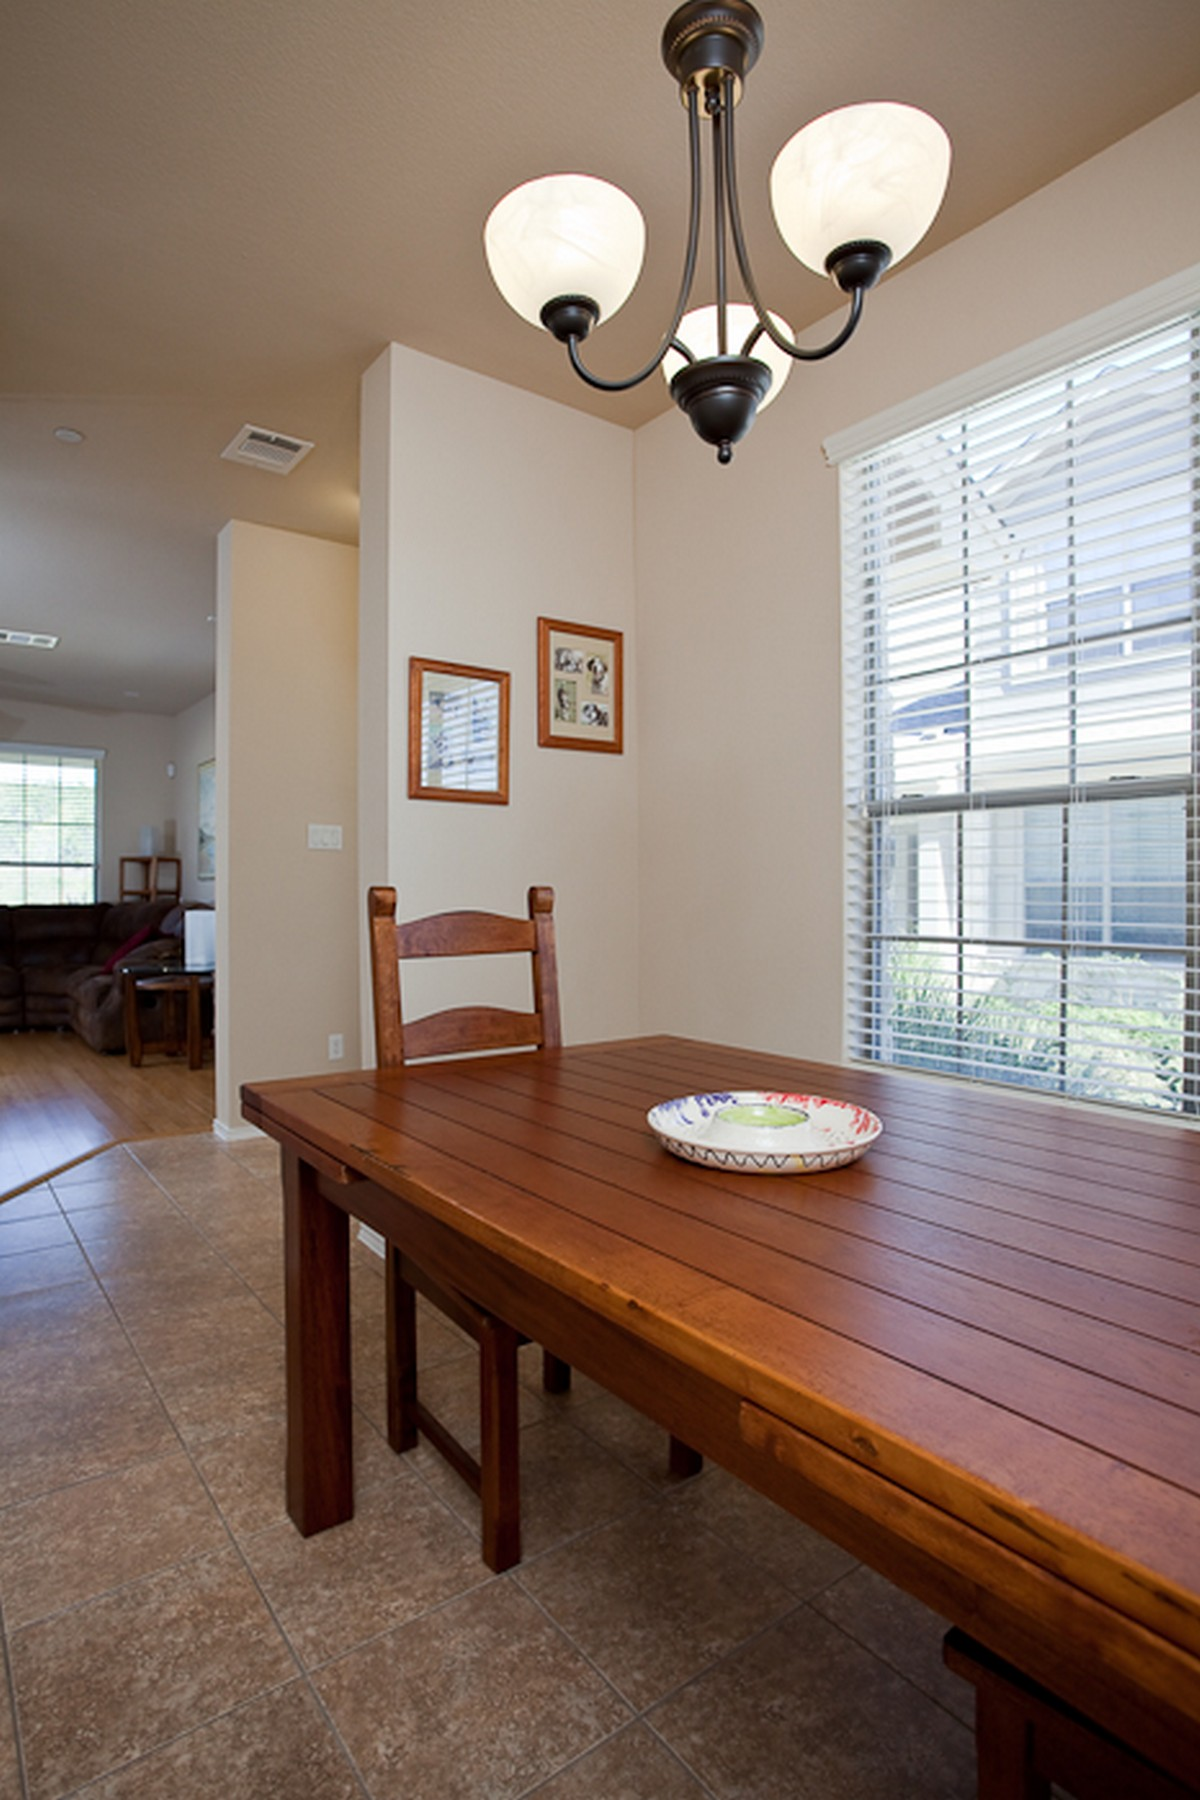 Additional photo for property listing at Beautiful End Unit Brodie Heights Condo 9201 Brodie Ln 903 Austin, Texas 78748 Estados Unidos